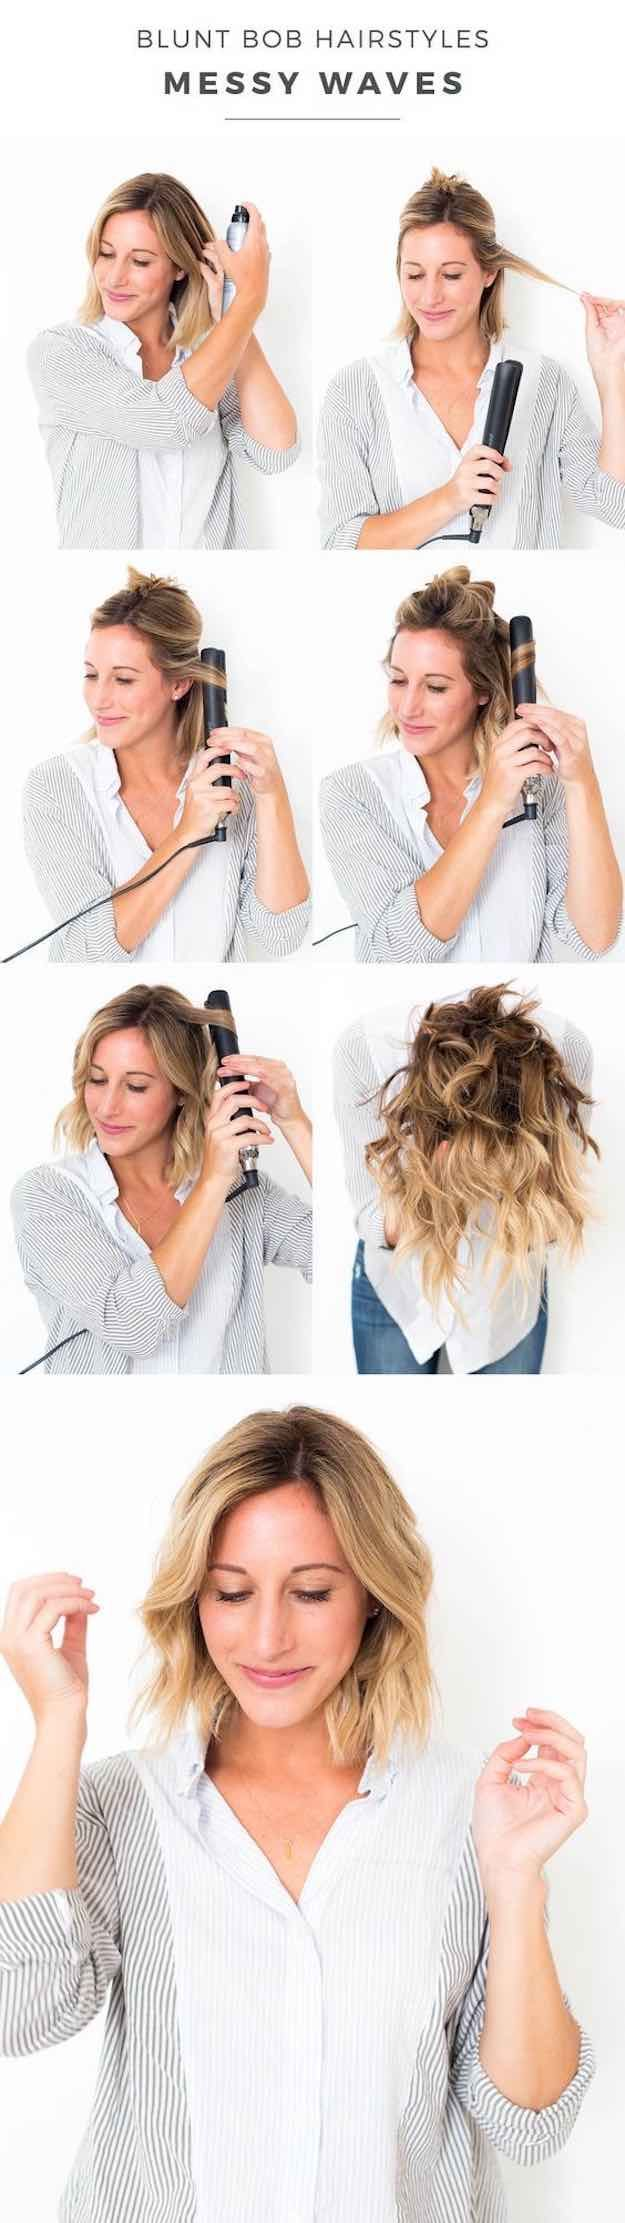 41 Lob Haircut Ideas For Women - BLUNT BOB HAIRSTYLES: MESSY WAVES -What is a lo...